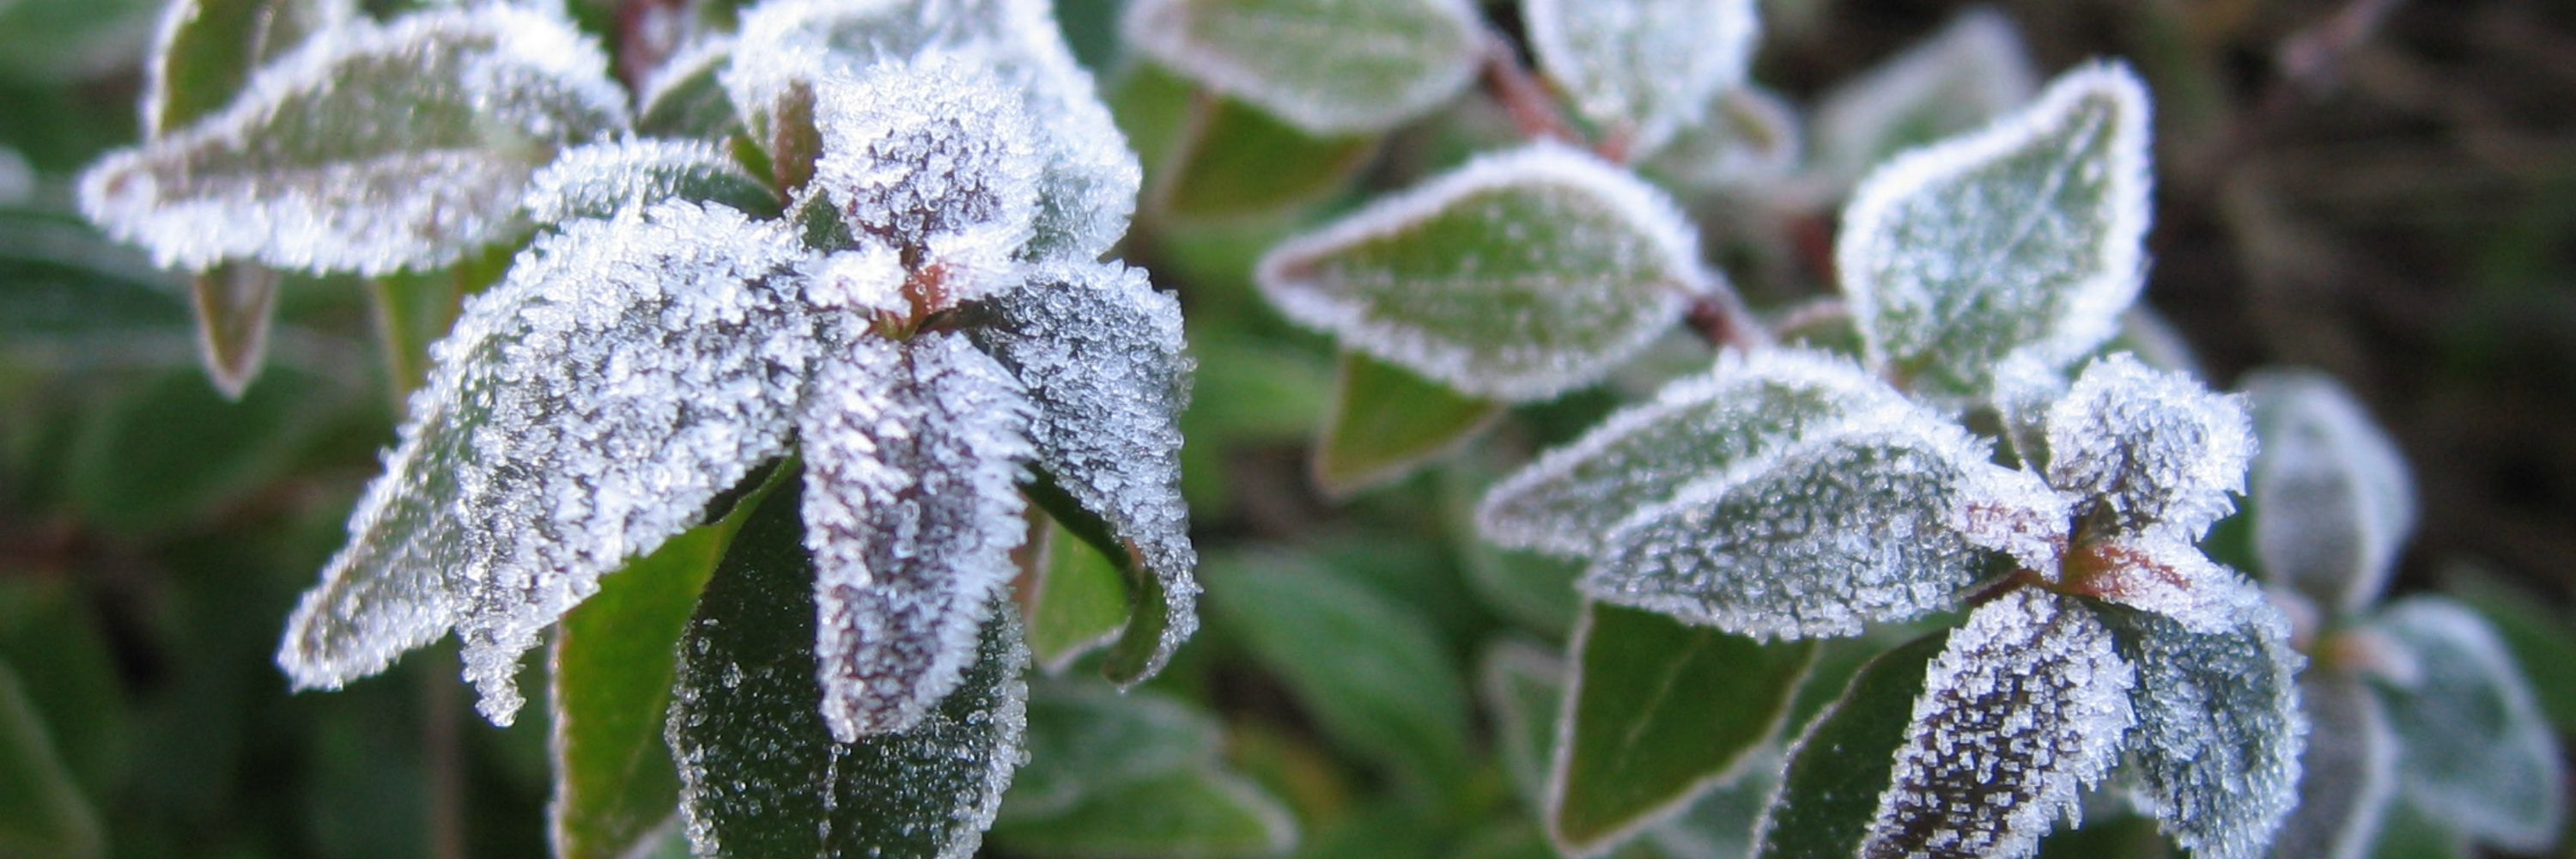 Frost Banner for abiotic plant problems, picture of plant with frost crystals on it for Anne of Green Gardens